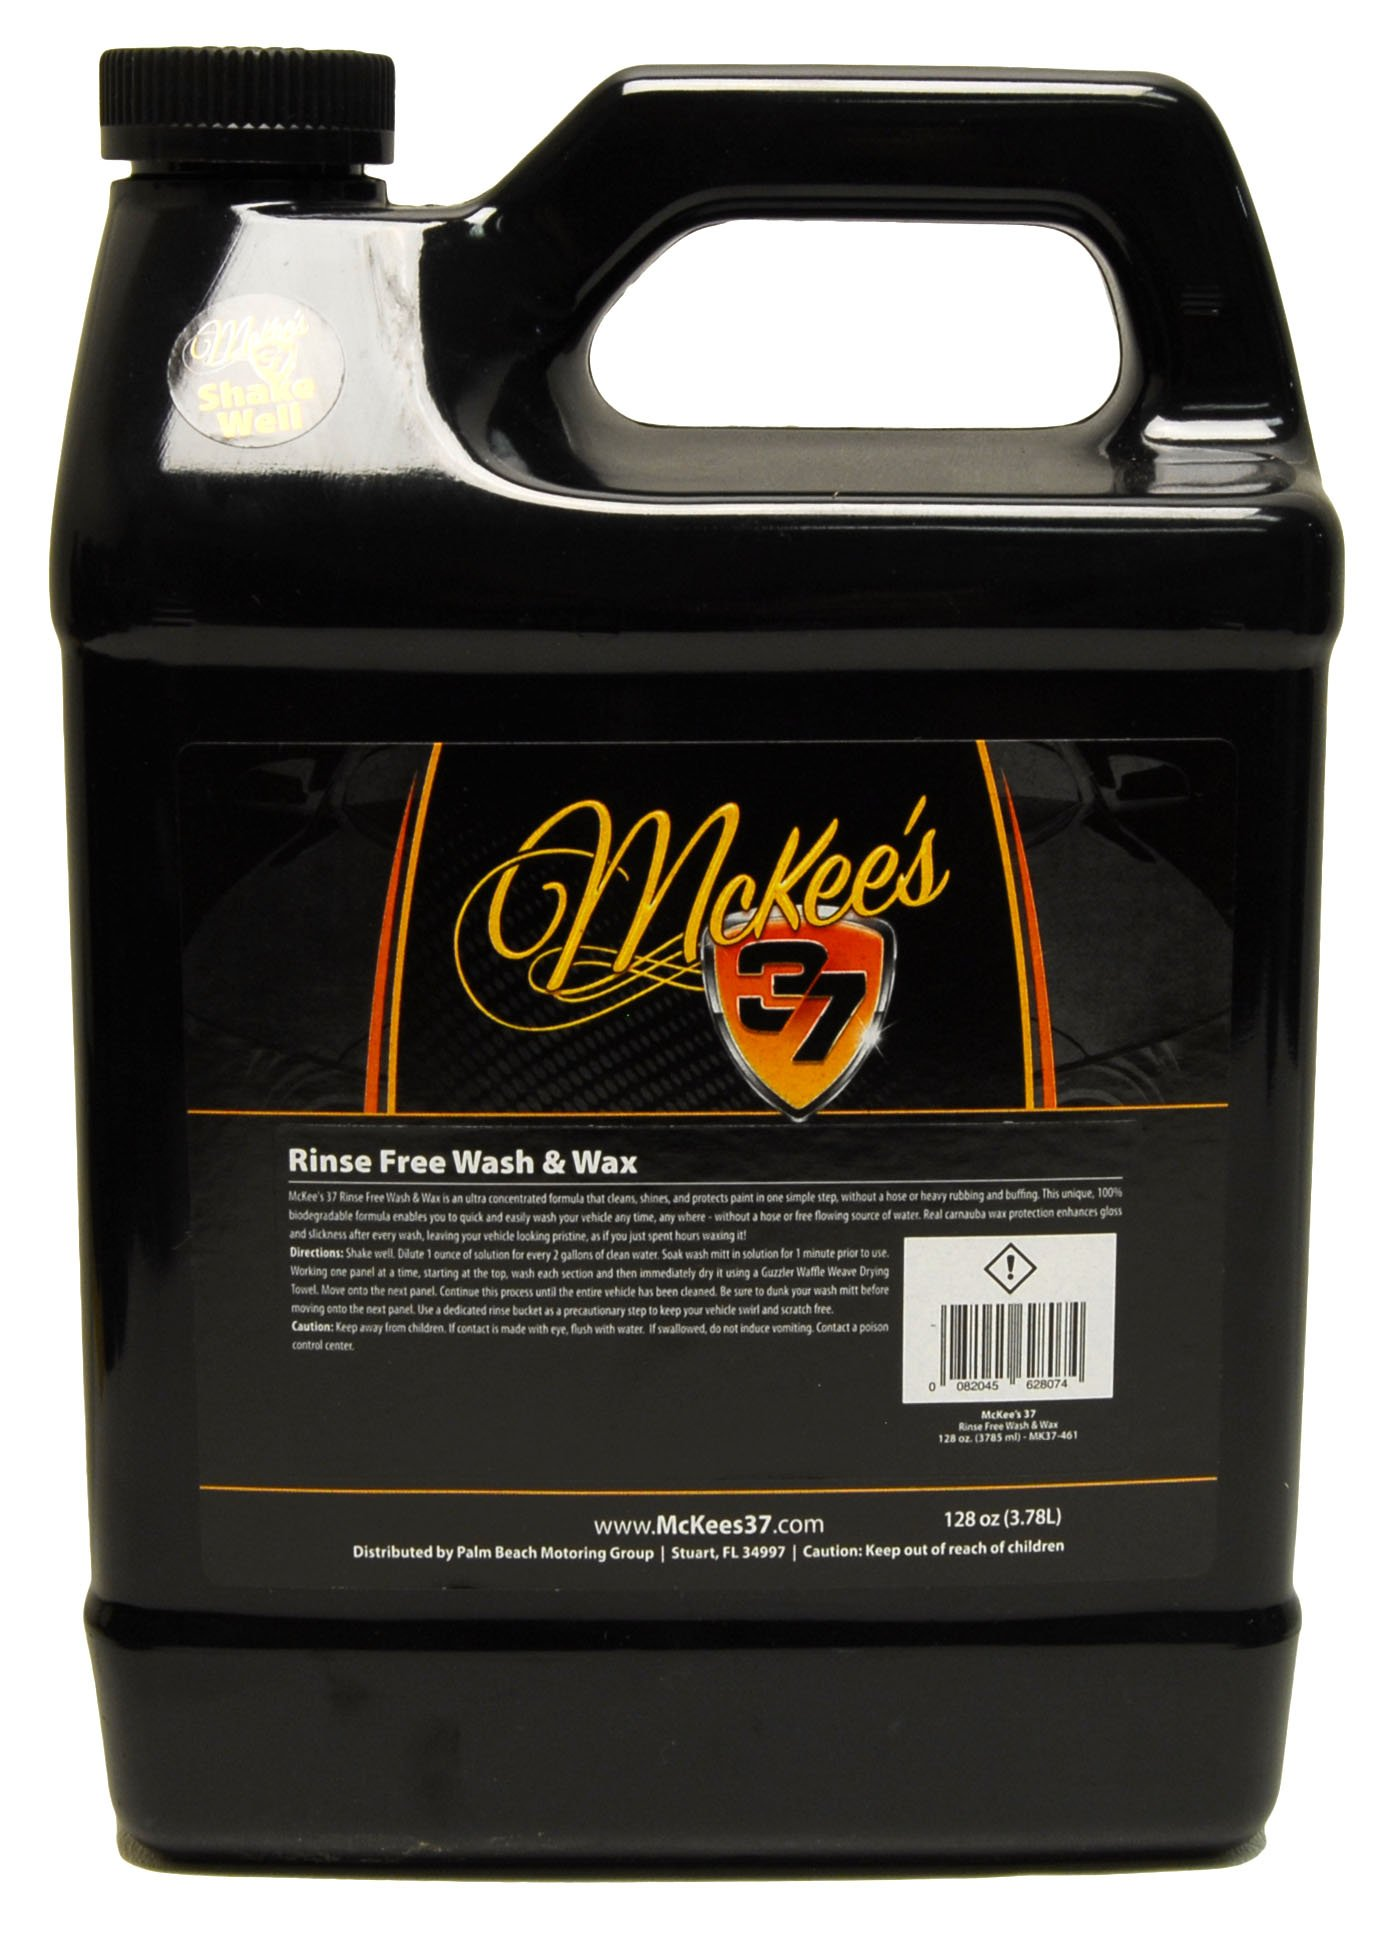 McKee's 37 MK37-461 Rinse Free Wash and Wax 128 Fluid_Ounces